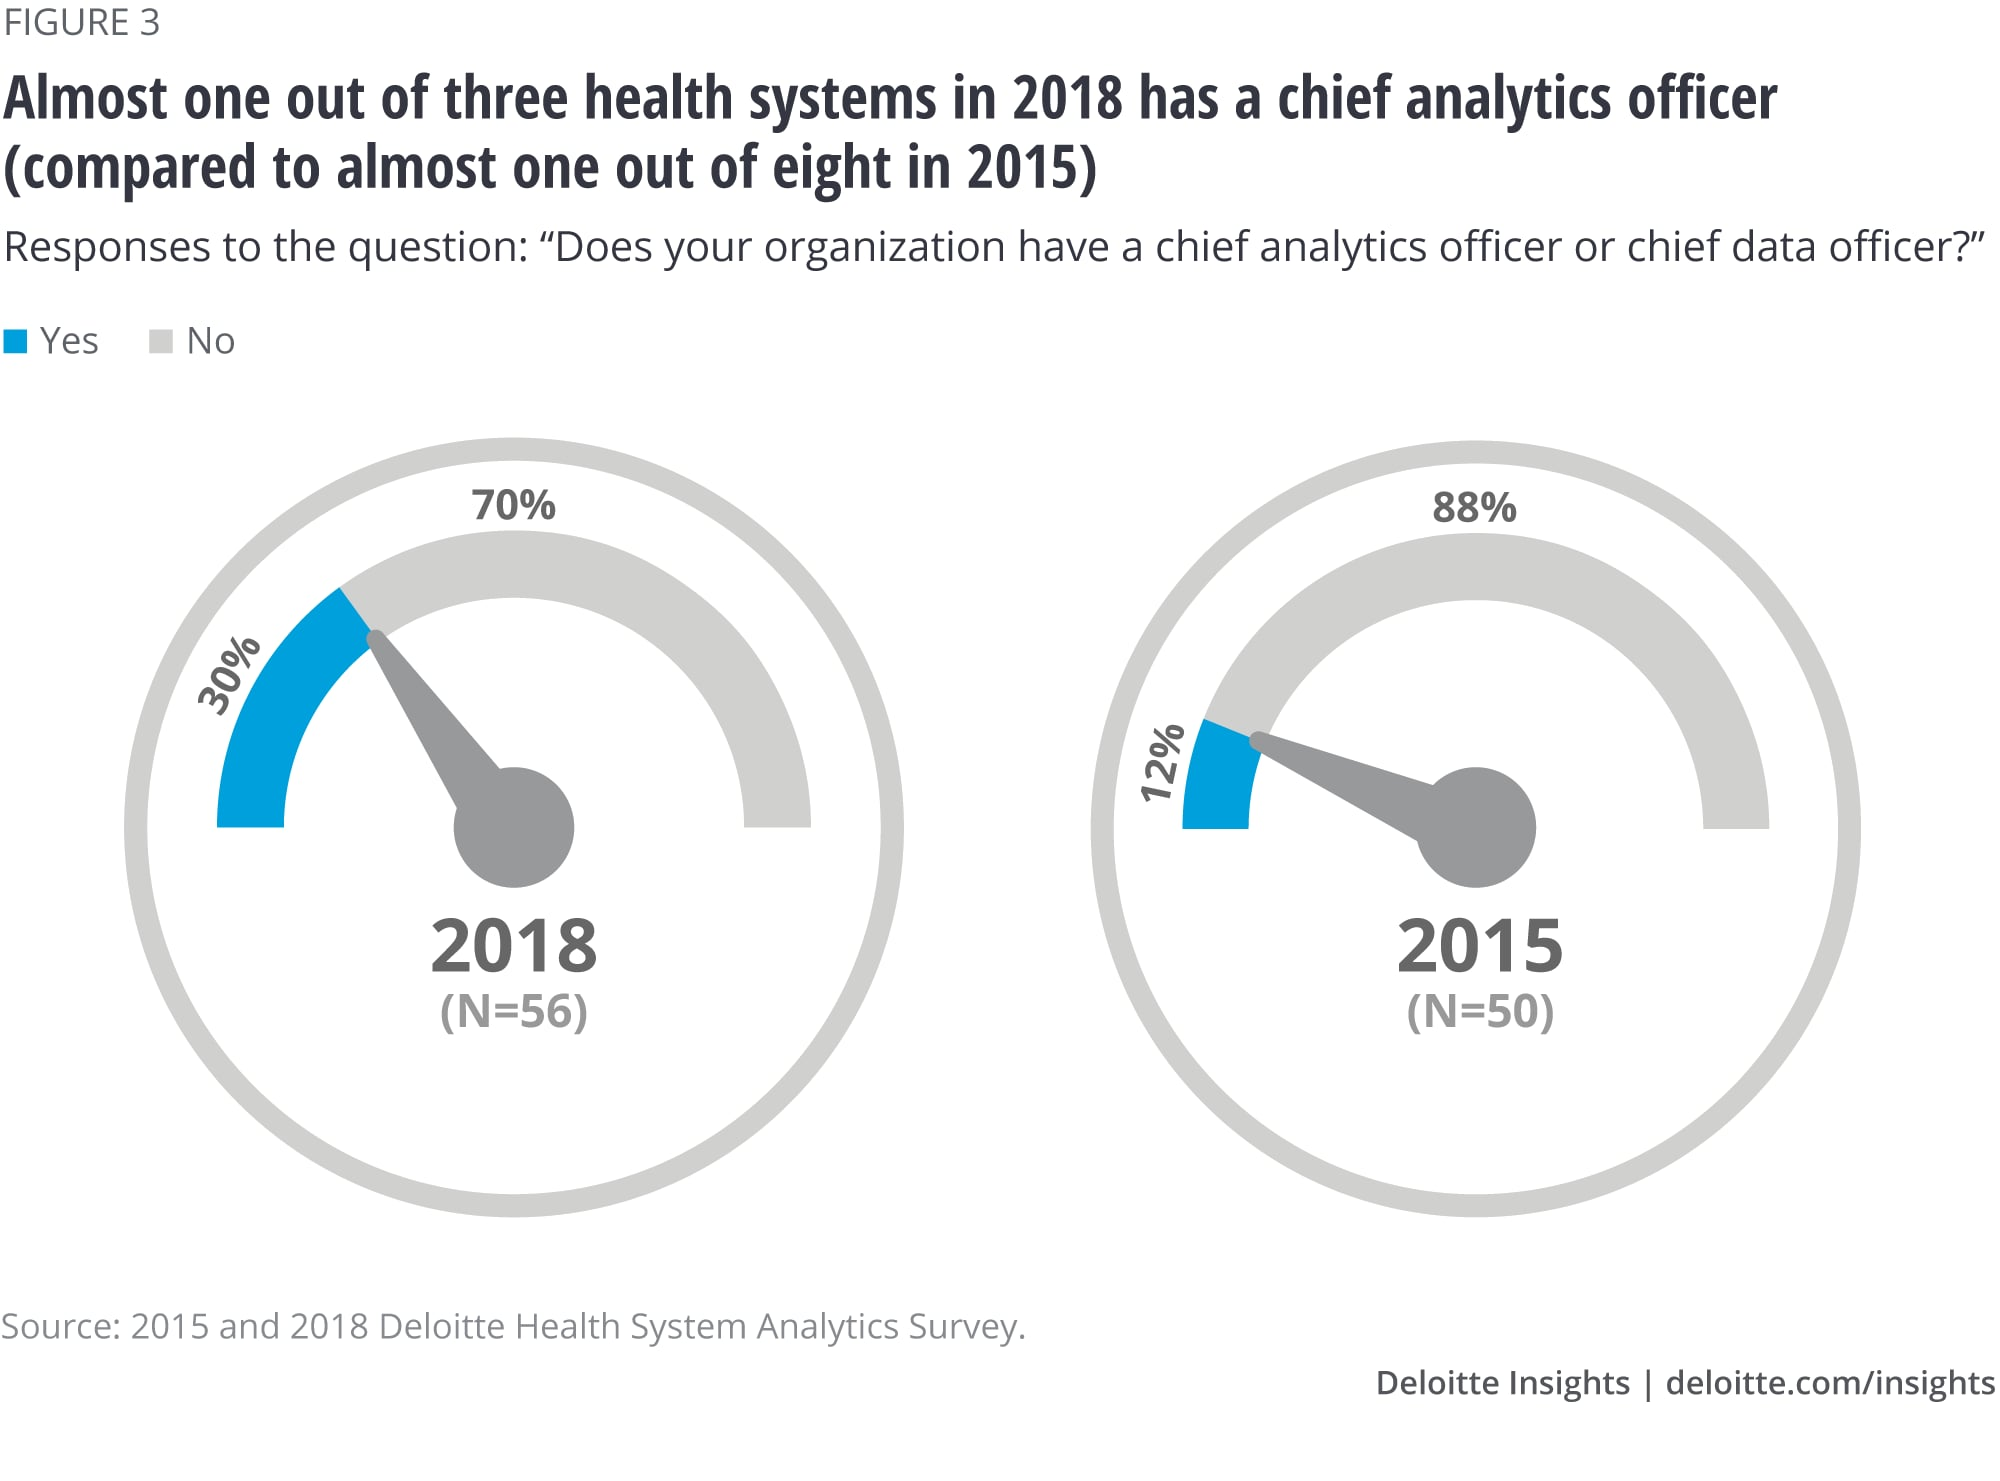 Almost one out of three health systems in 2018 has a chief analytics officer (compared to almost one out of eight in 2015)